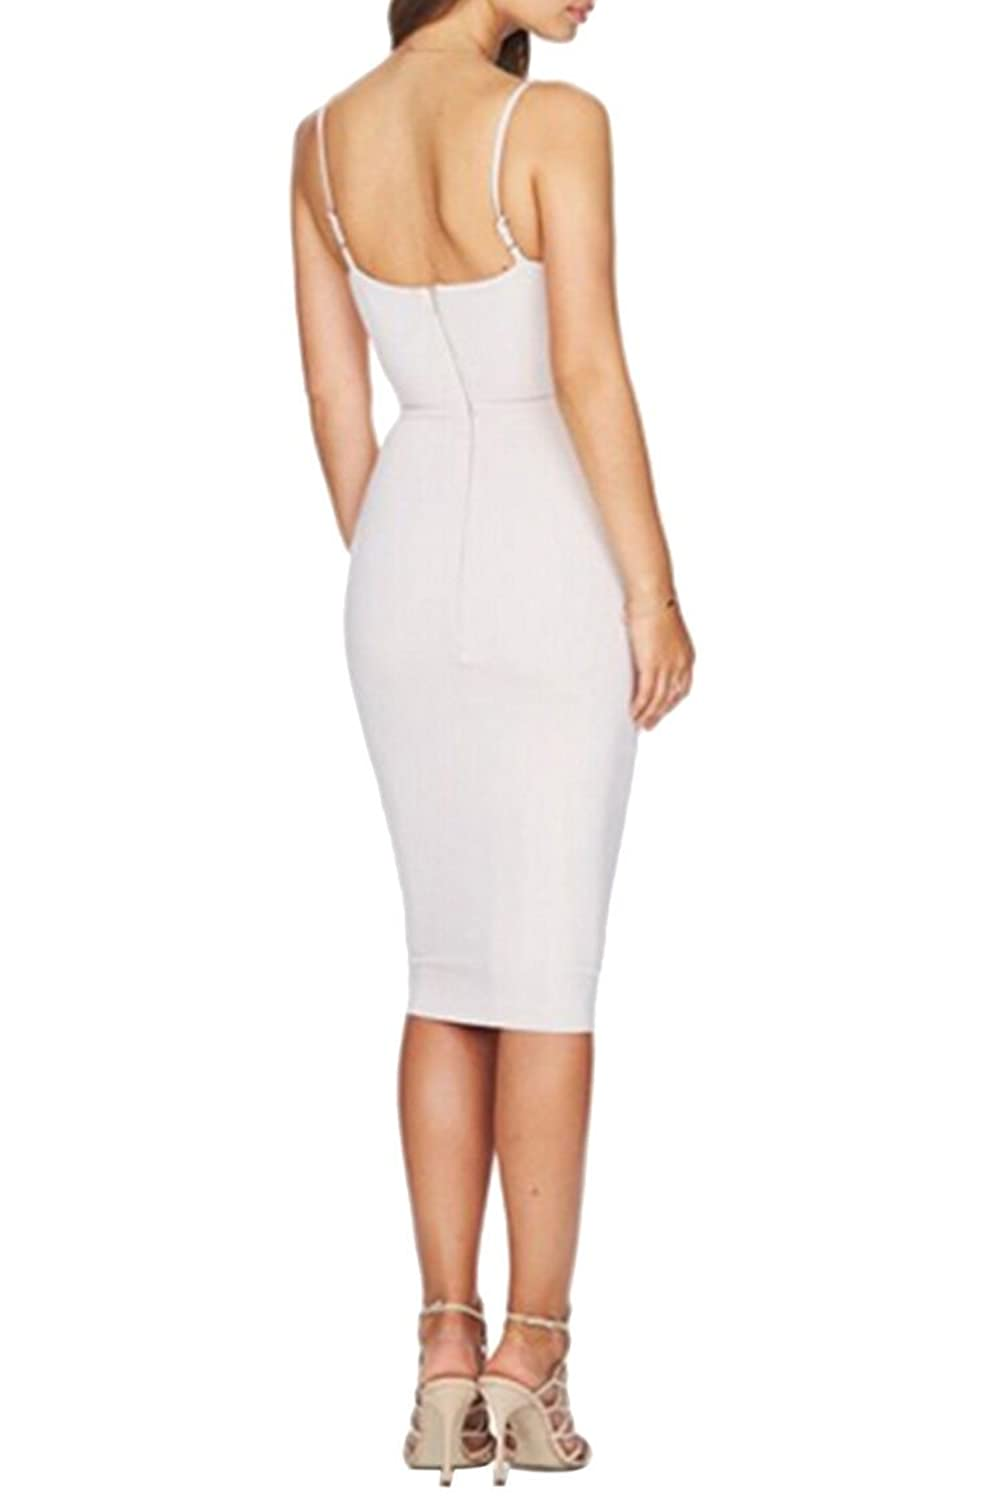 LOV ANNY Womens Sexy Sleeveless Stretch Bodycon Party Bandage Dresses